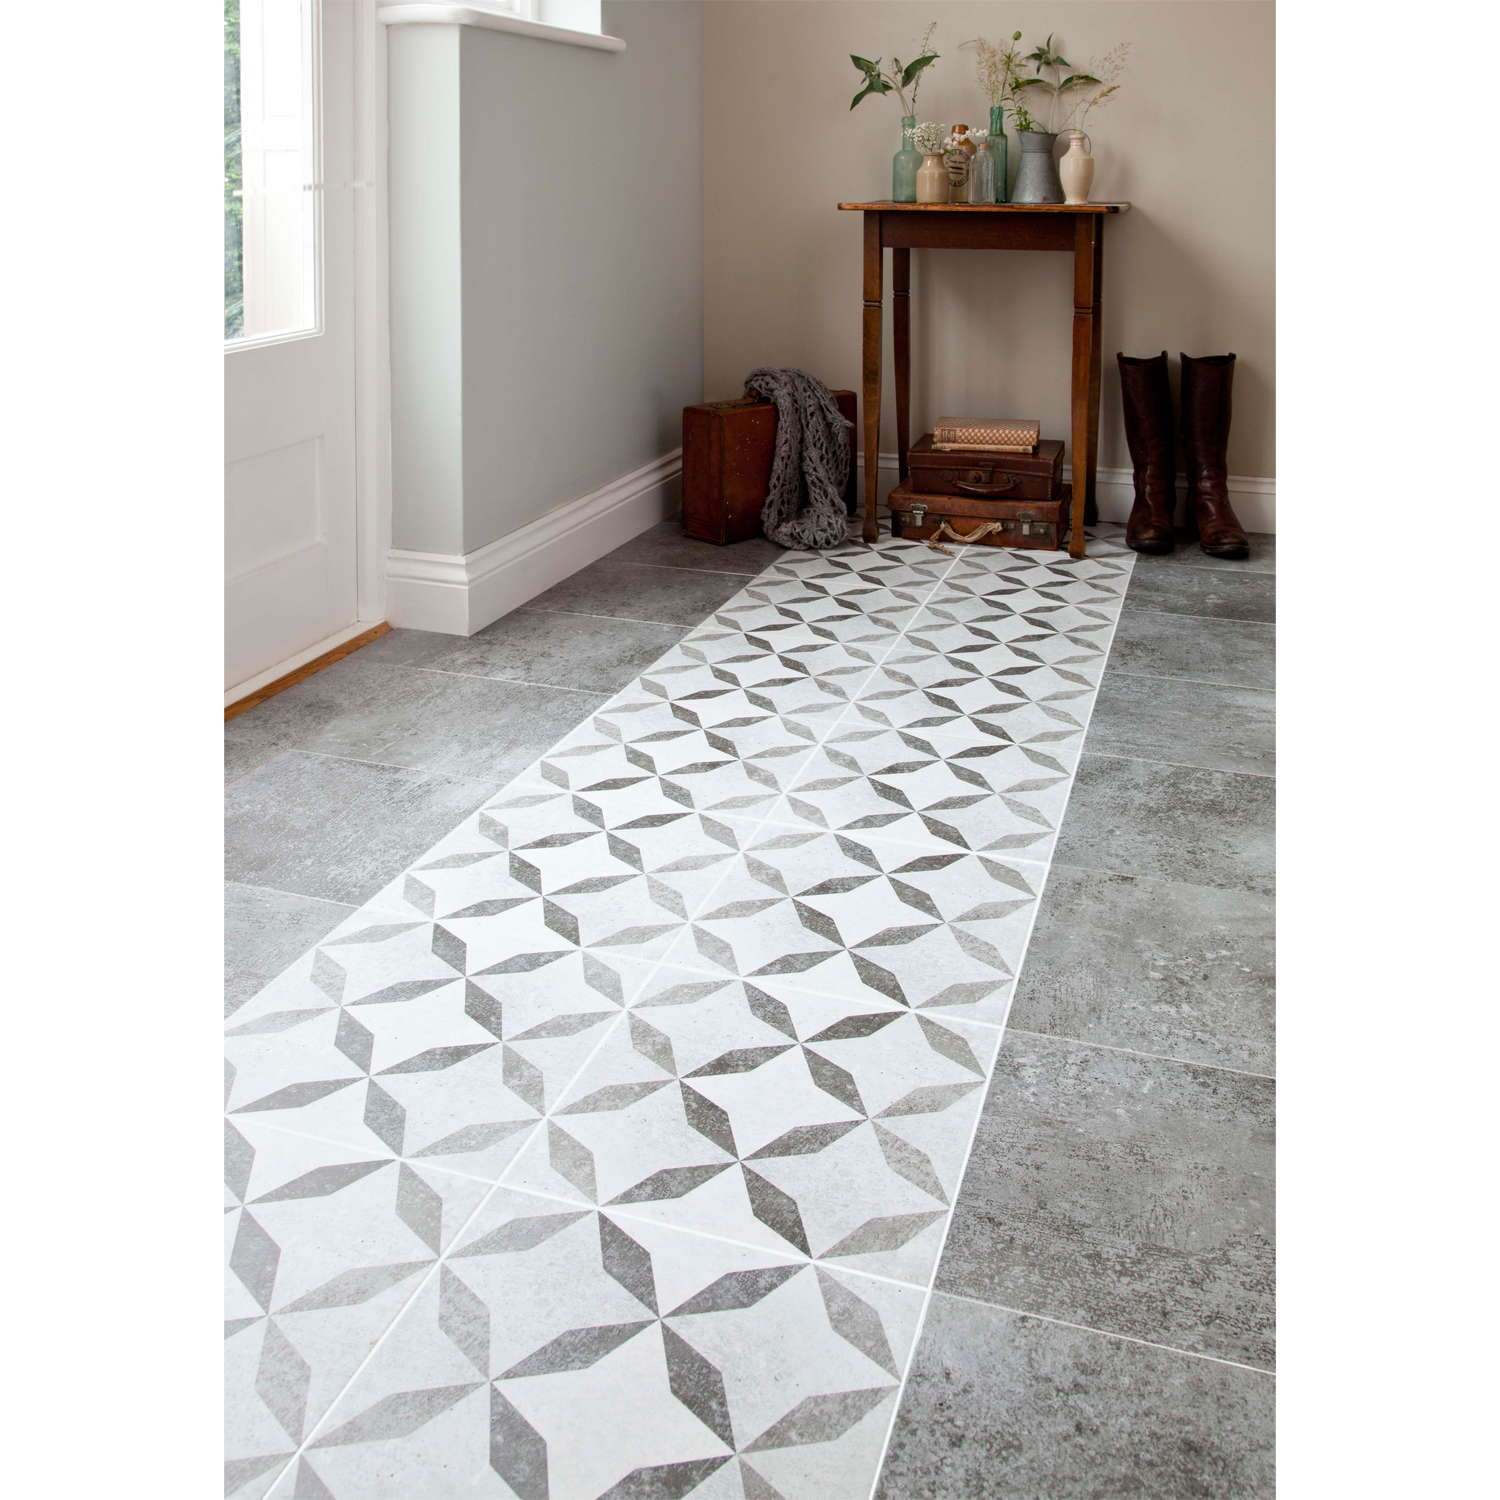 Feature floor tiles image collections home flooring design brixton dark grey floor 331x331 bathstore 6 walker pinterest made using the latest in hd inkjet dailygadgetfo Image collections